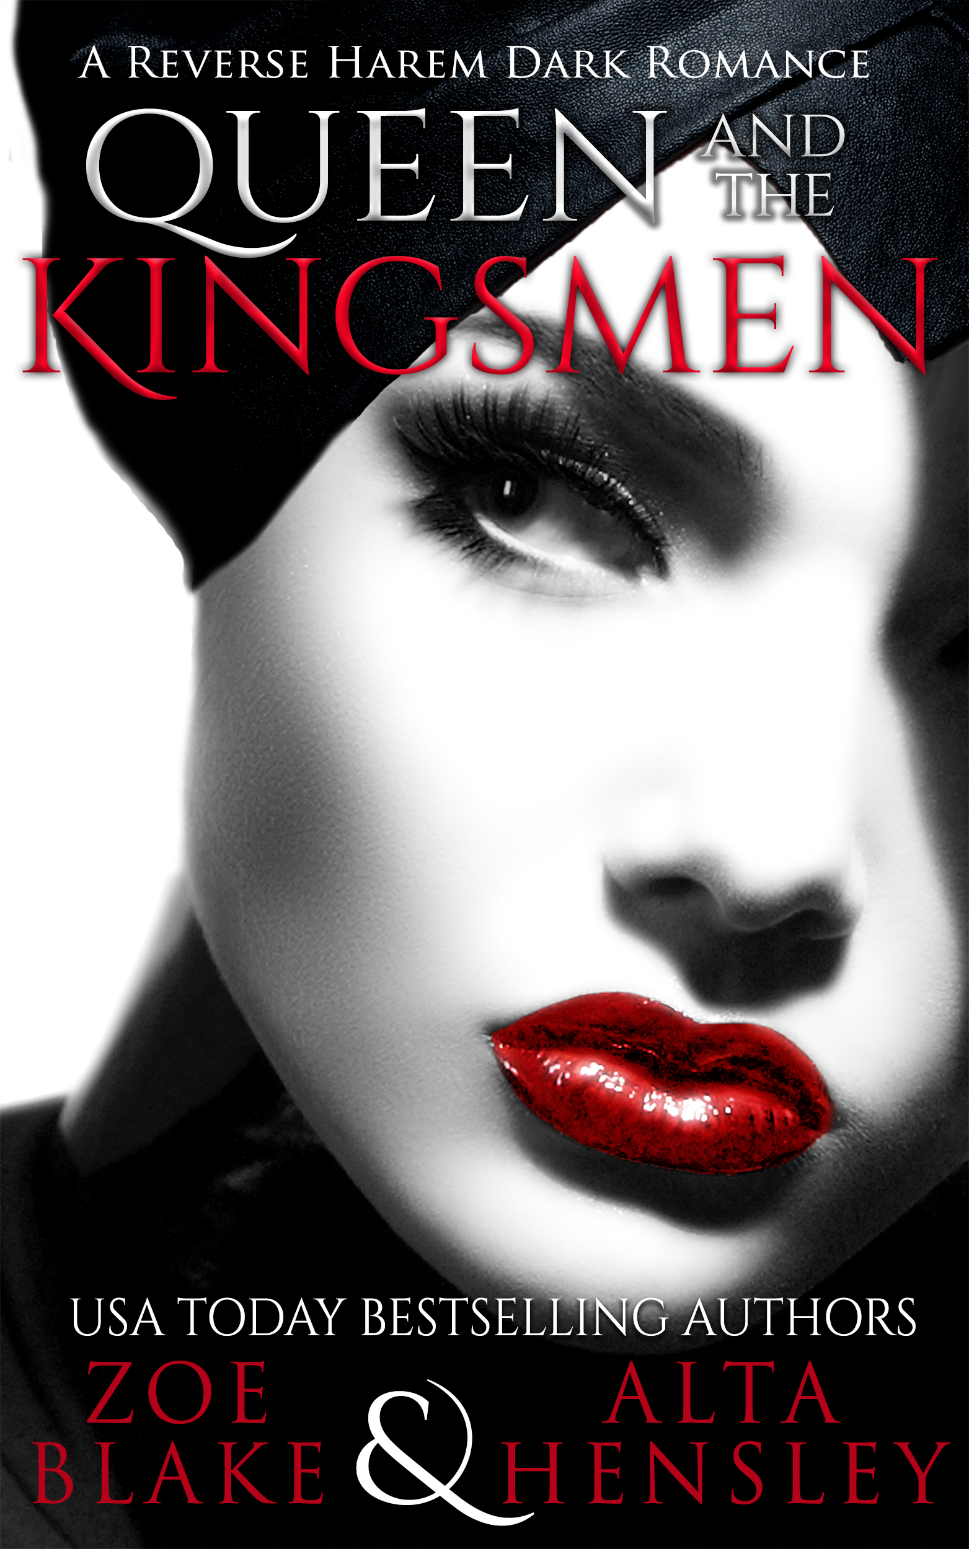 Title: Queen and the Kingsmen